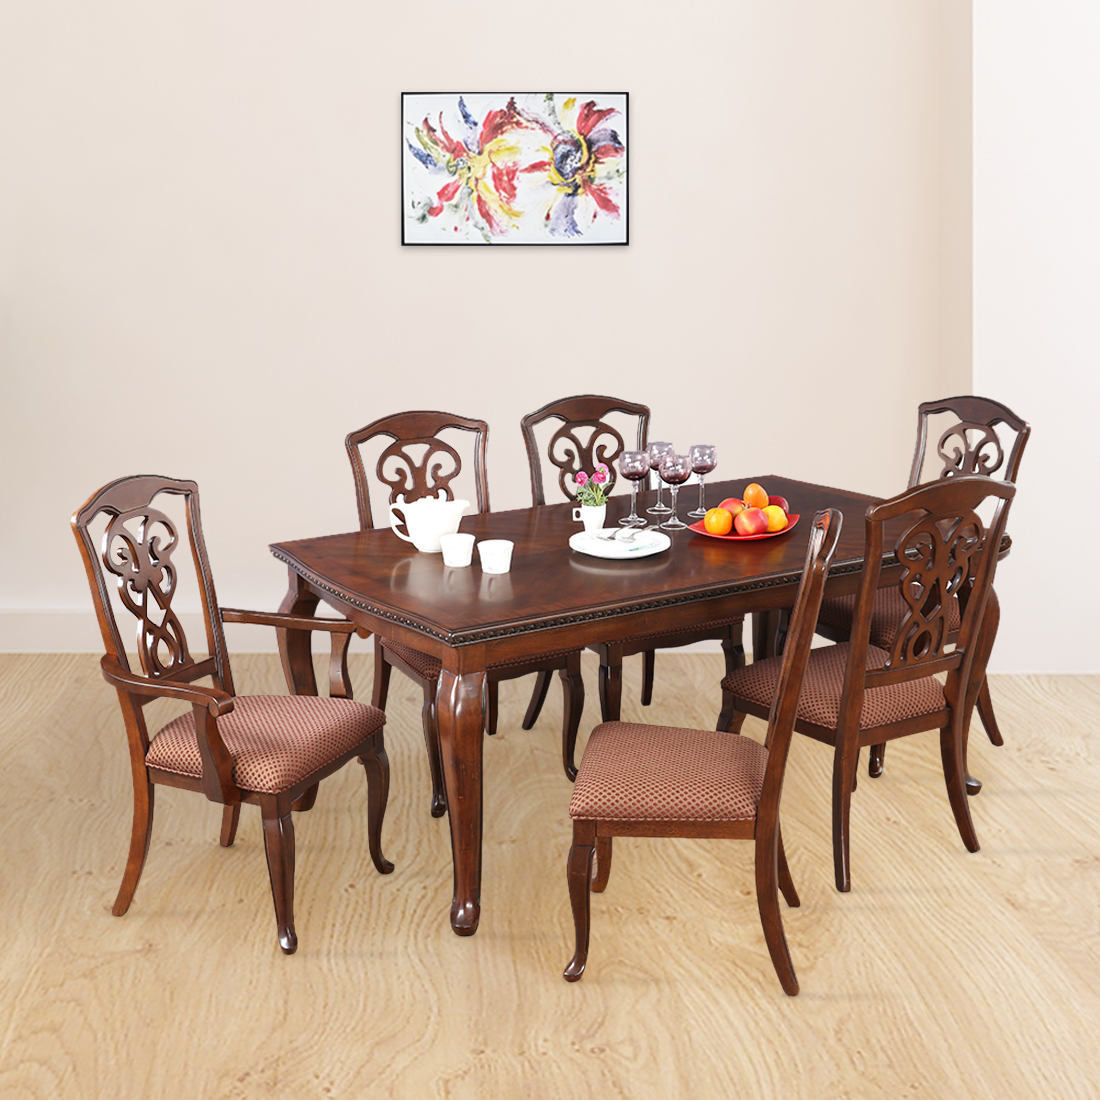 Astoria Solid Wood Six Seater Dining Set in Dark Brown Colour by HomeTown